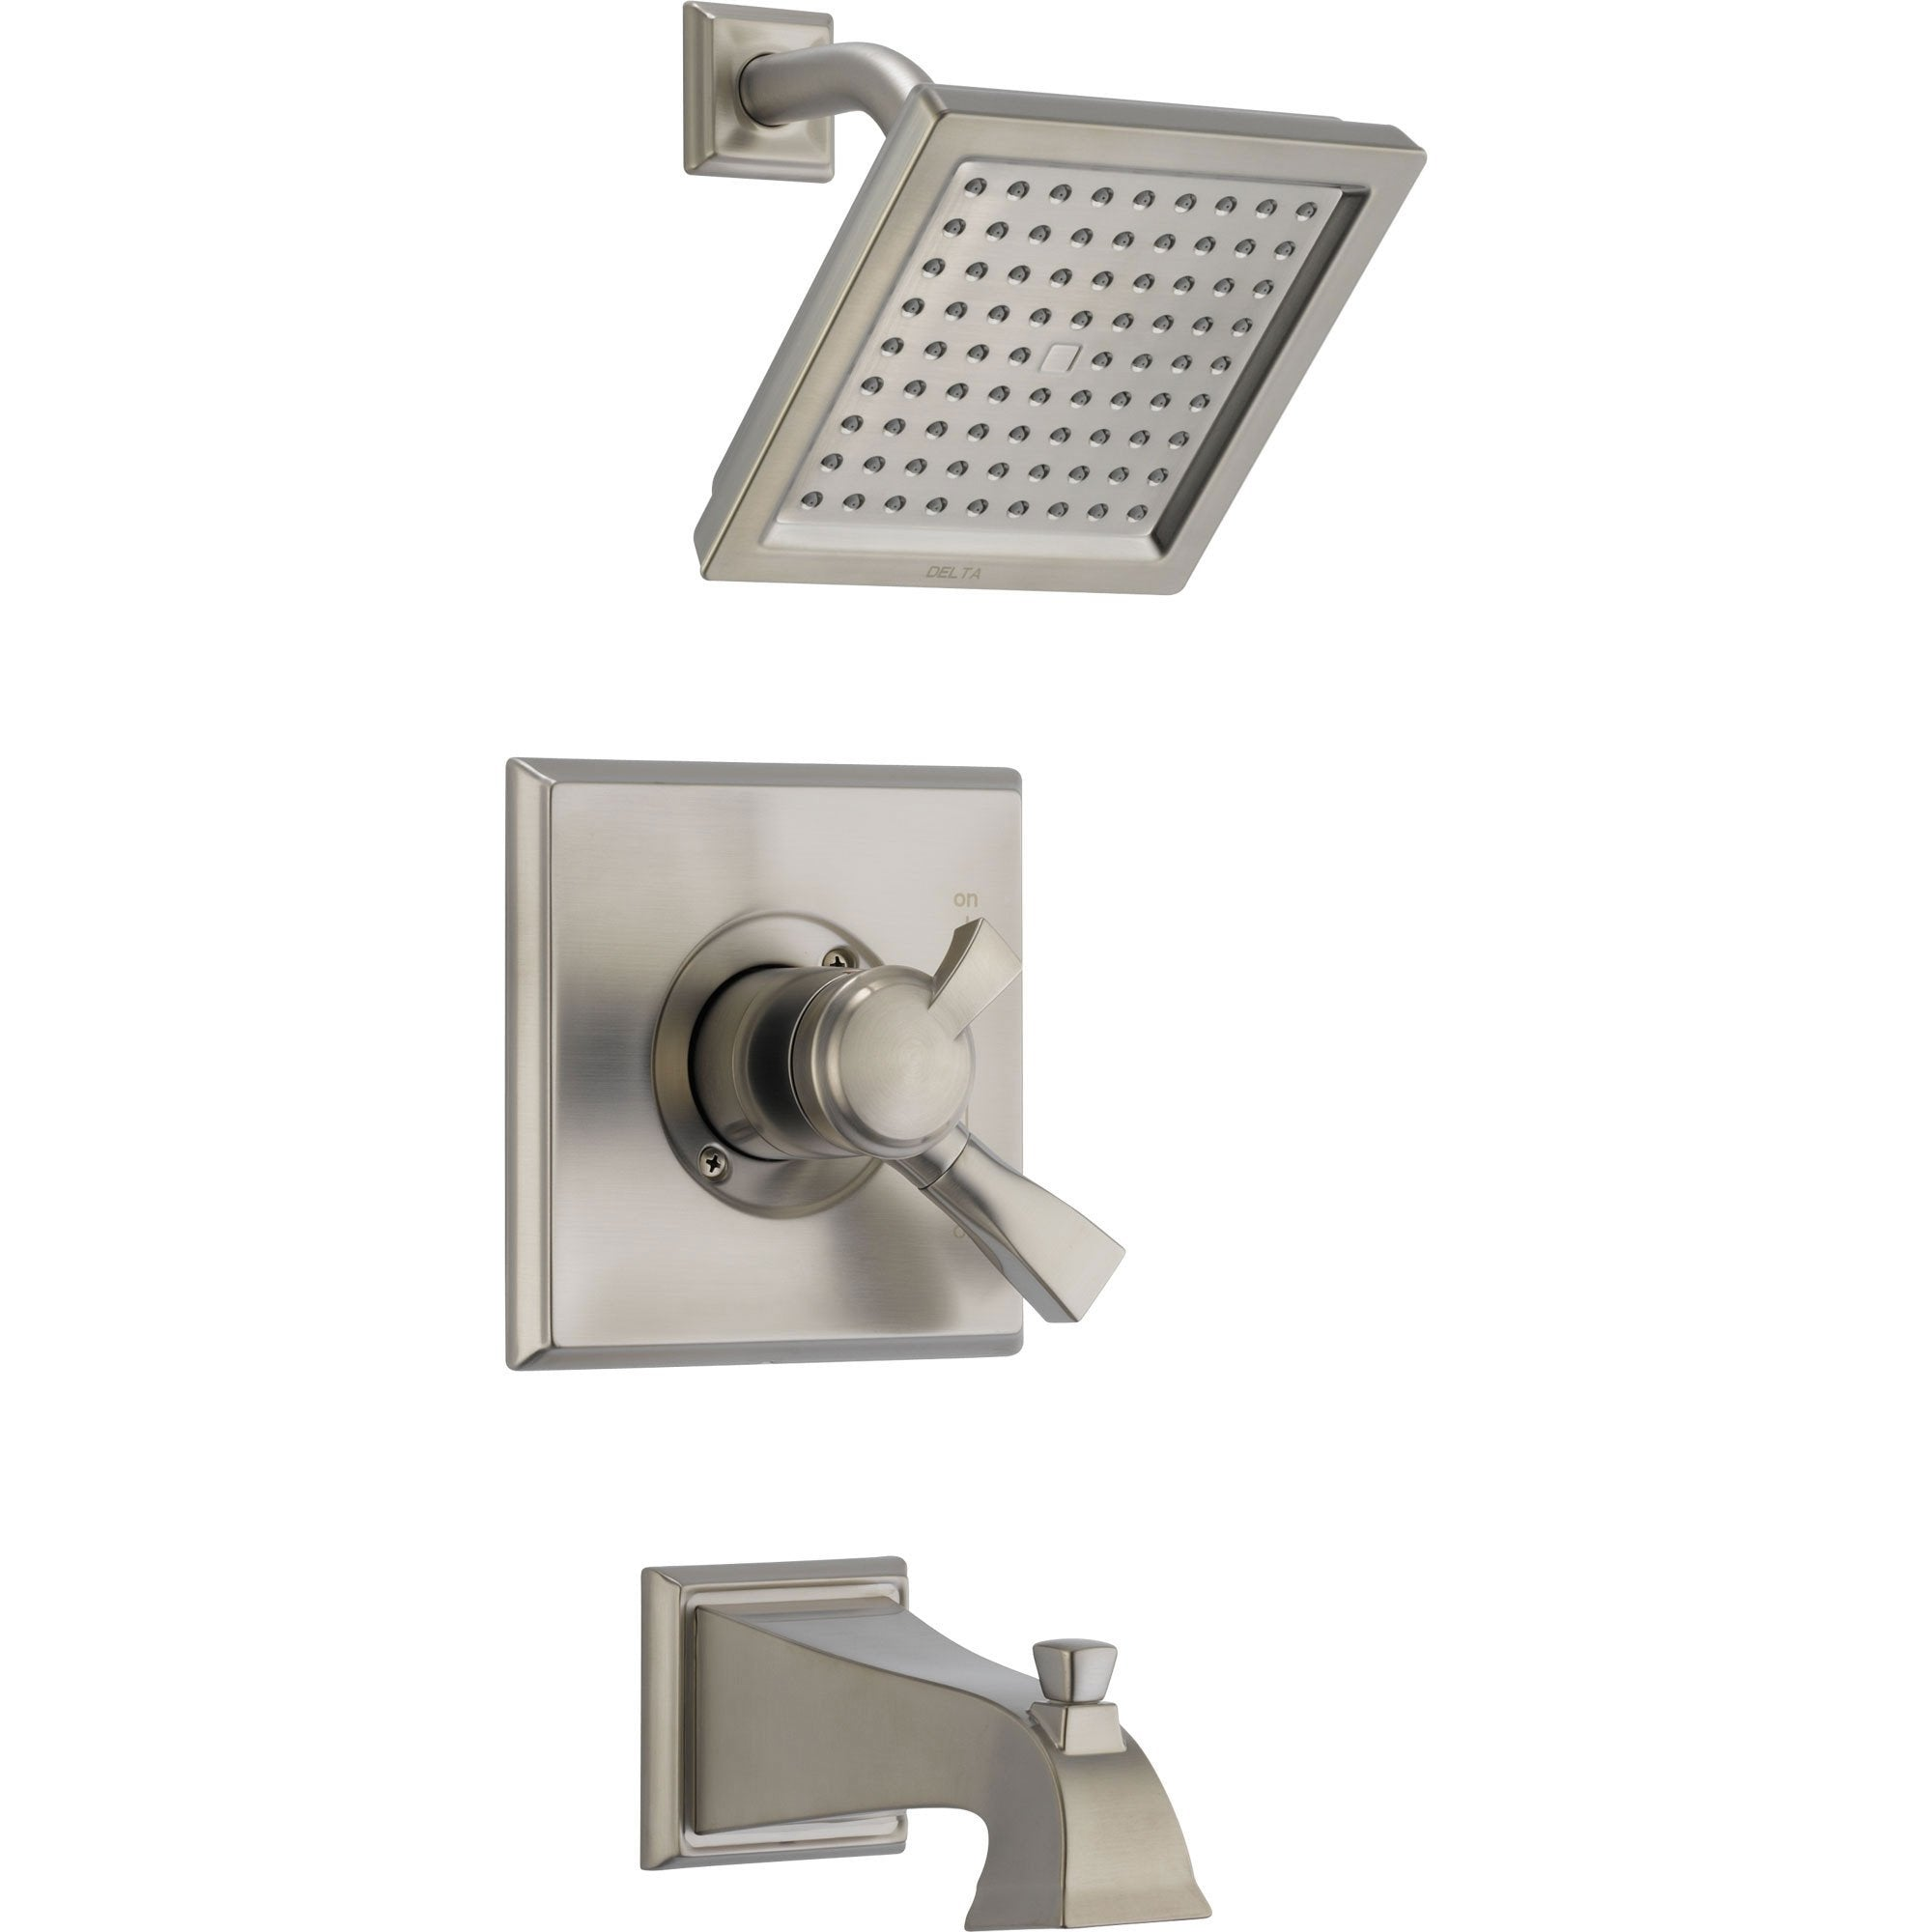 Delta Dryden Temp/Volume Tub & Shower Faucet with Valve in Stainless Steel D443V